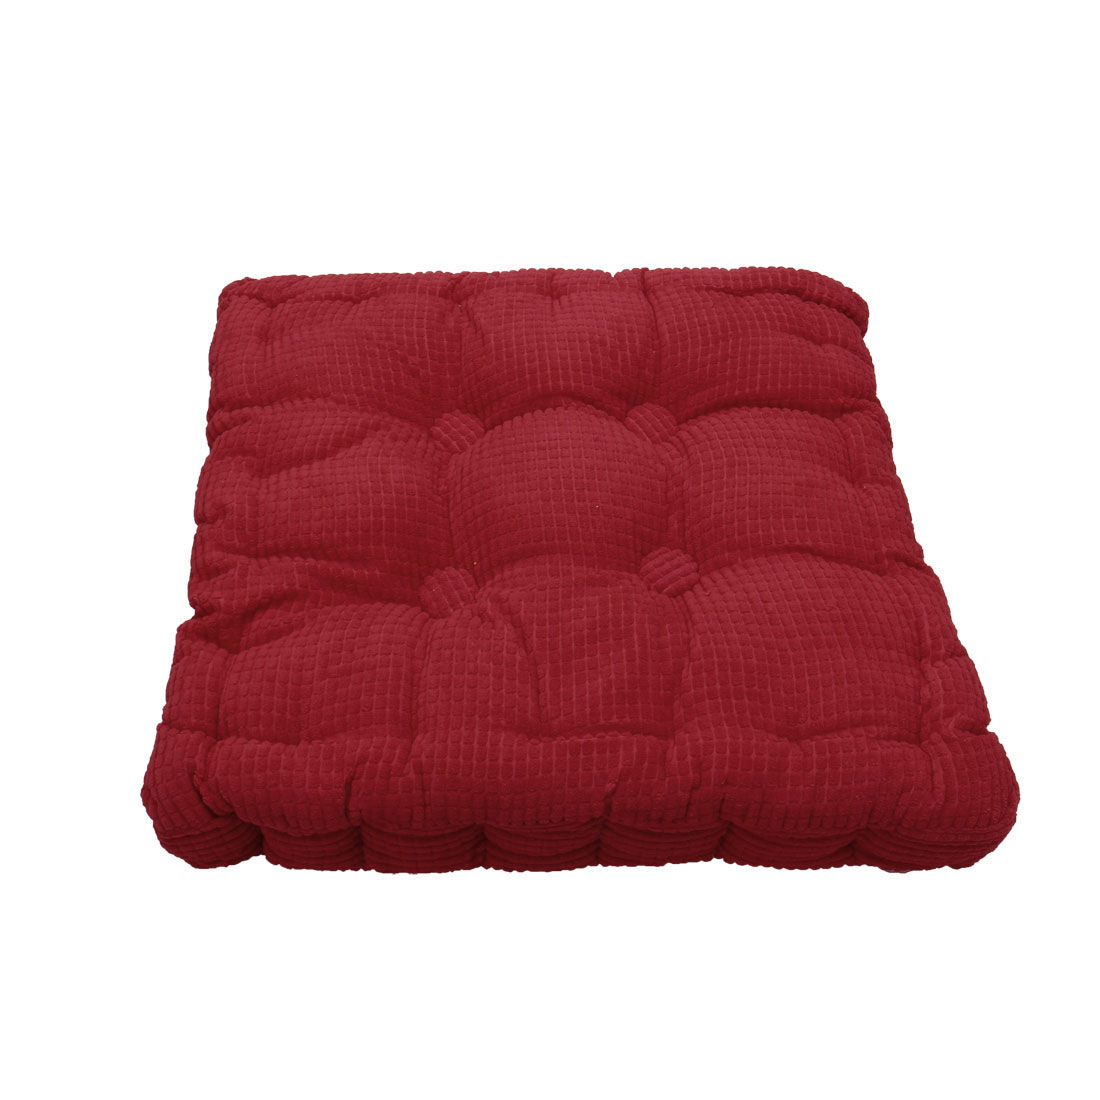 Home Office Corduroy Square Shaped Anti Slip Seat Chair Cushion Pad Cover Red